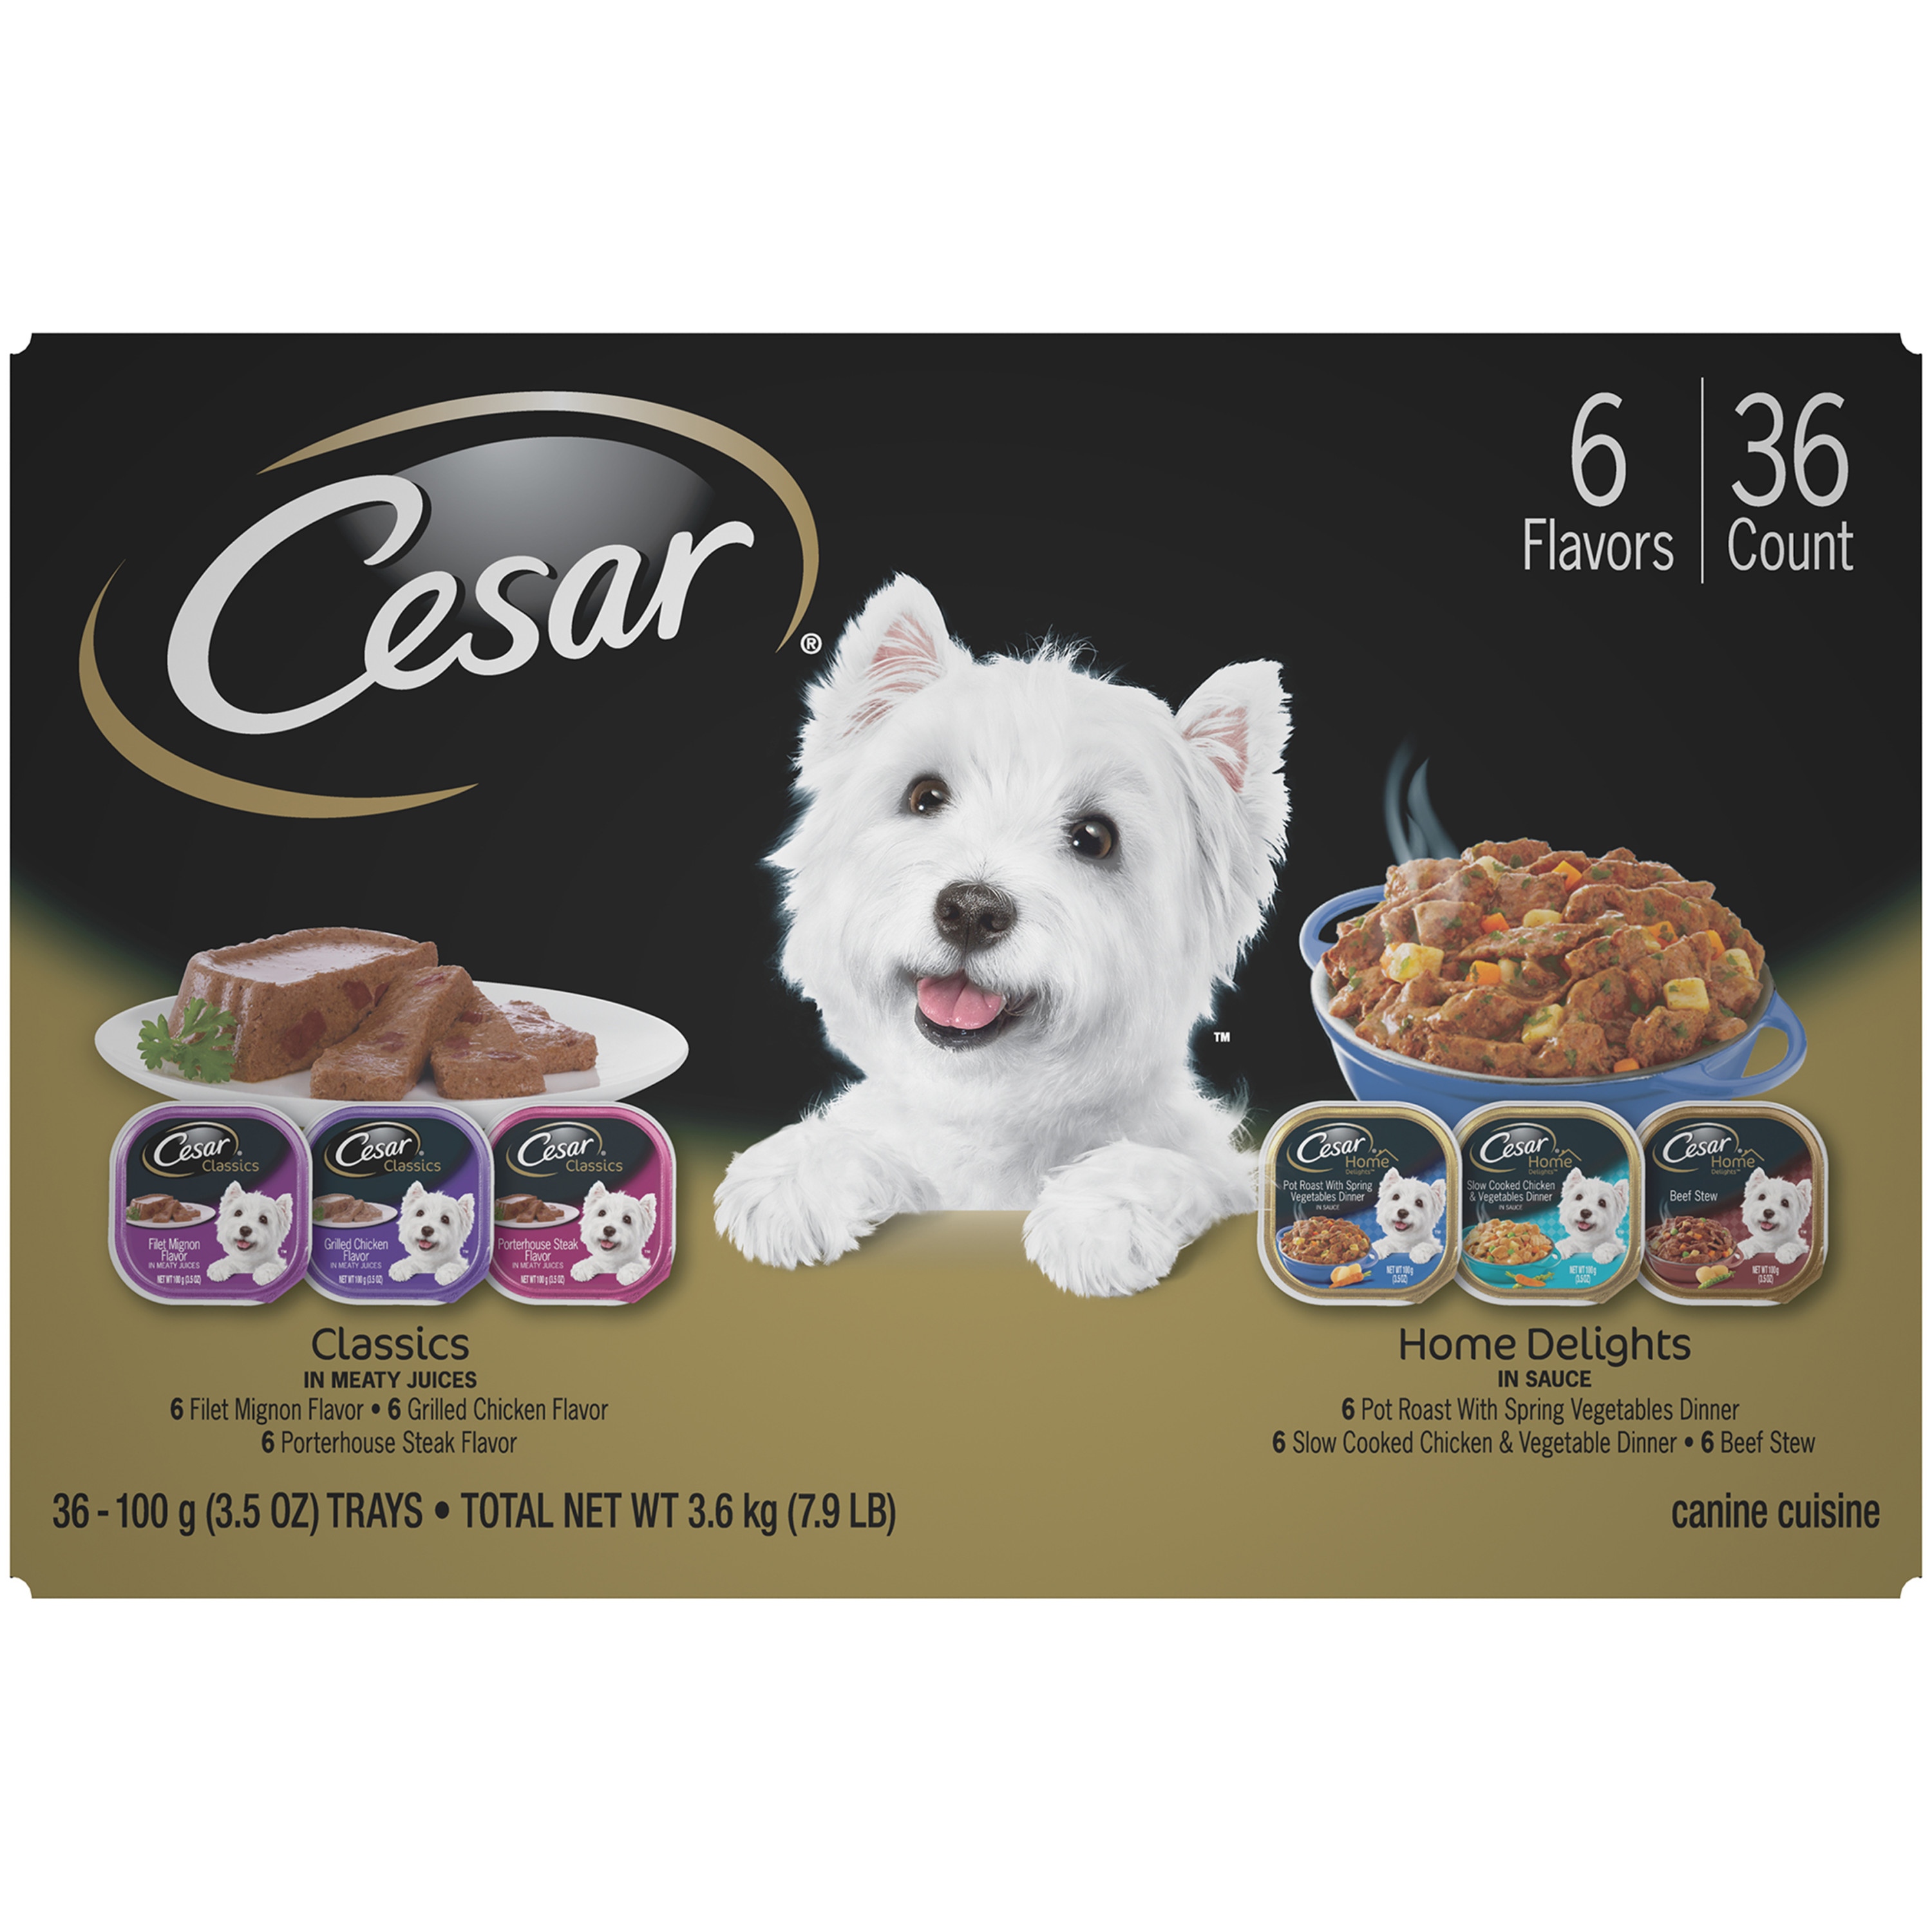 Cesar Canine Cuisine and Home Delights Wet Dog Food Variety Pack, (36) 3.5 oz. Trays